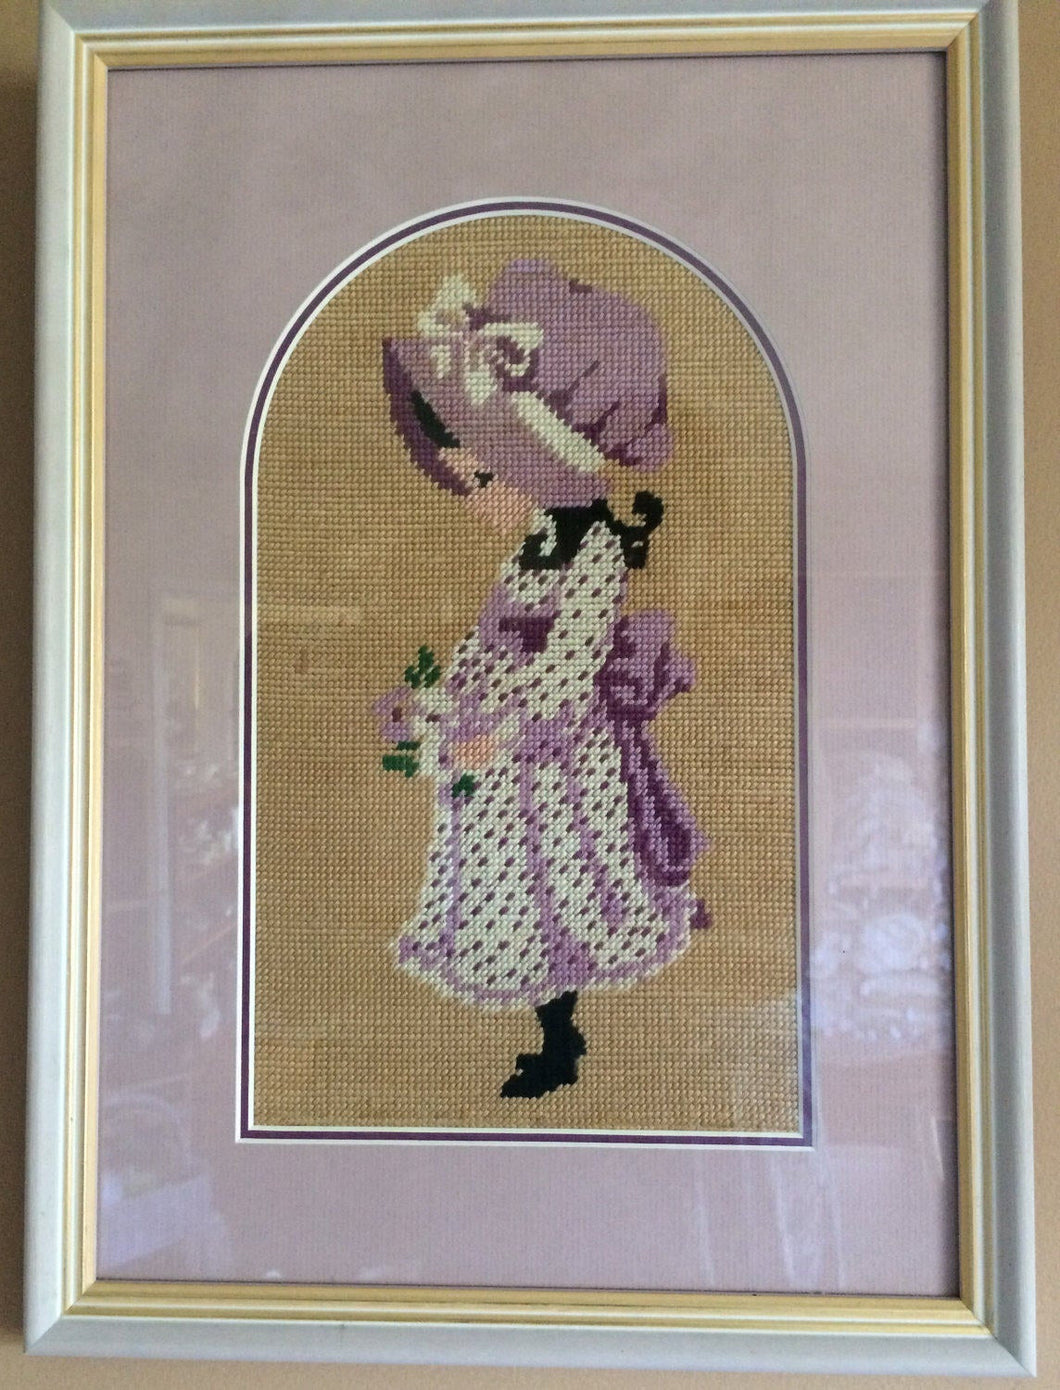 Framed Vintage Tapestry Sunbonnet Sue Gobelin Picture. Needlepoint Picture in Gilded Whitewashed Wooden Frame